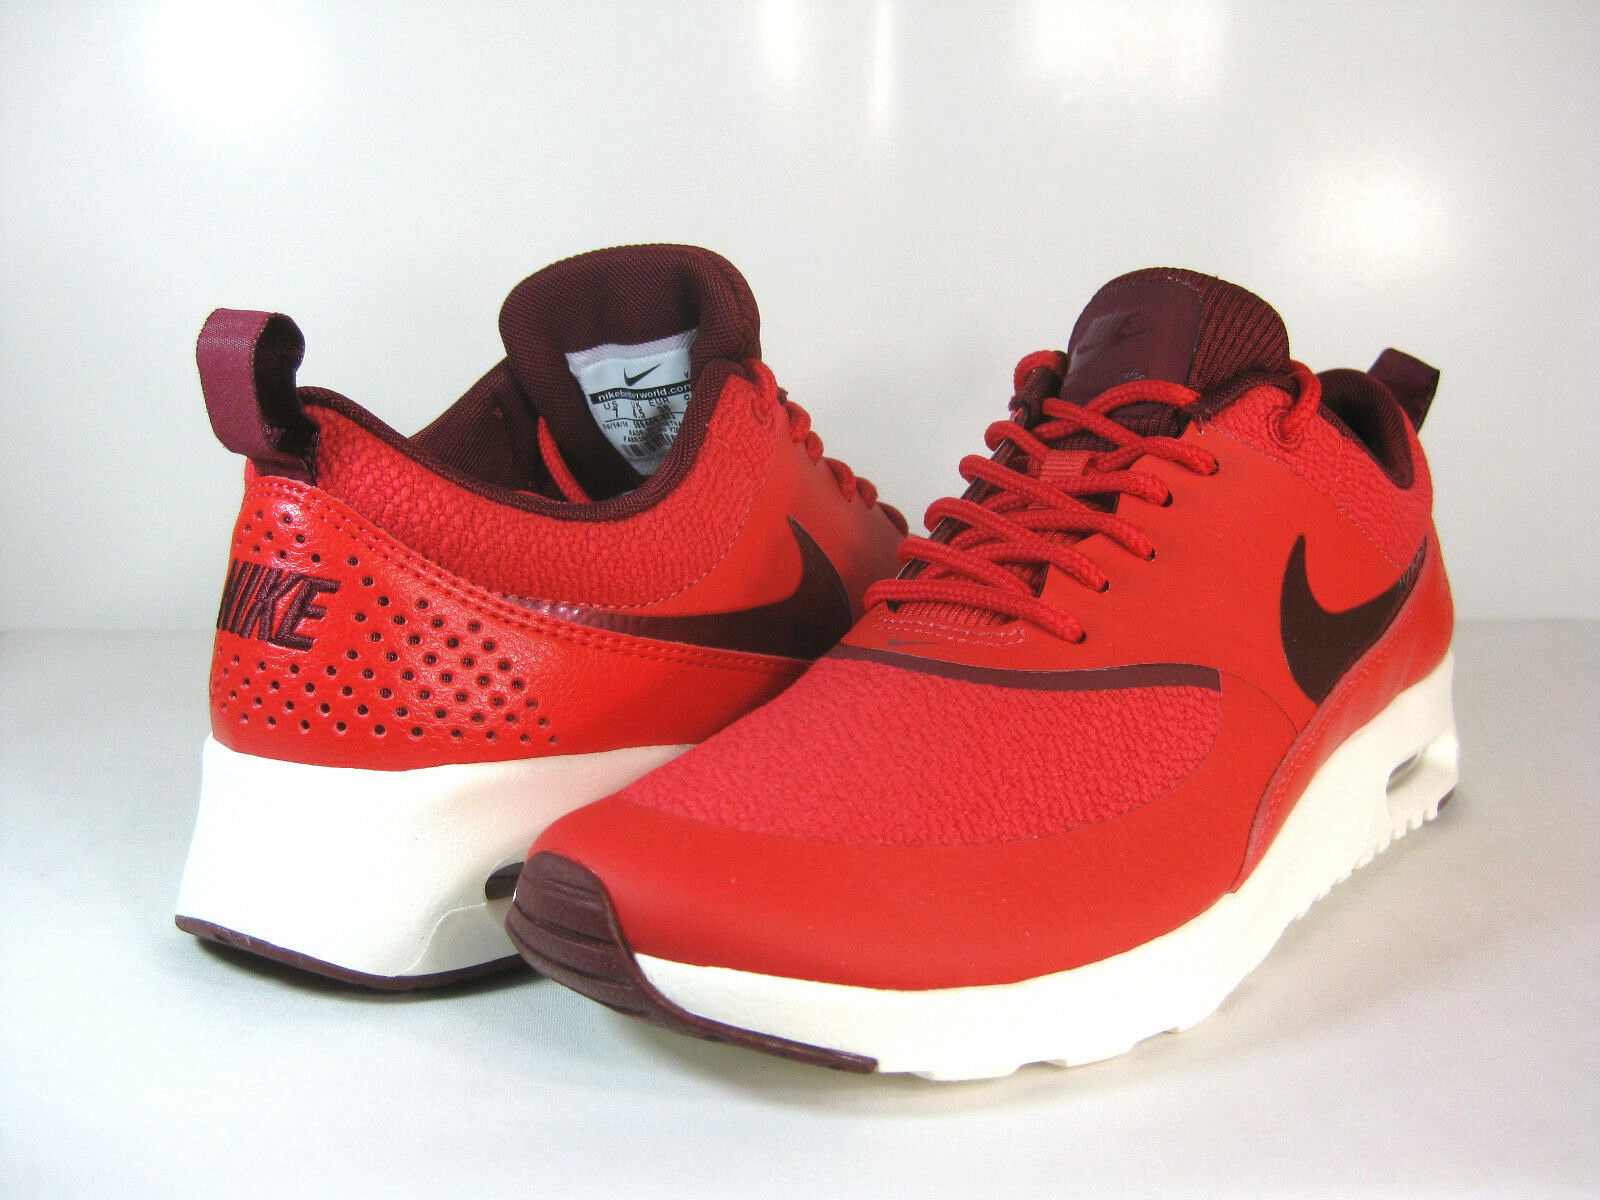 NIKE WMNS AIR MAX THEA Action Red Team Red-Sail -599409 603- ATHLETIC